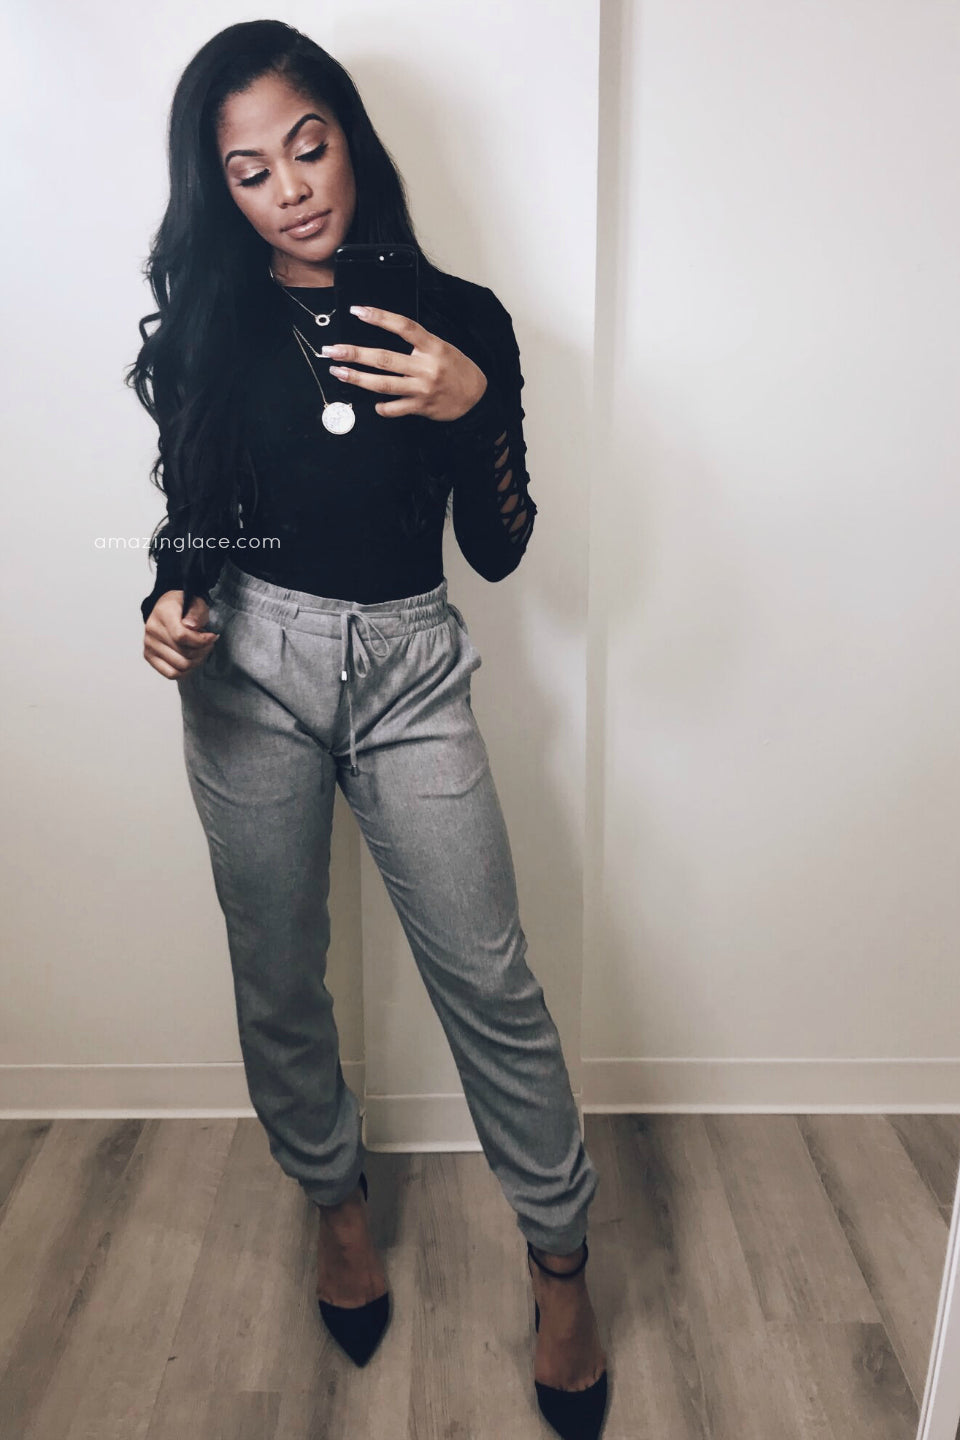 BLACK BODYSUIT AND GRAY DRAWSTRING PANTS OUTFIT